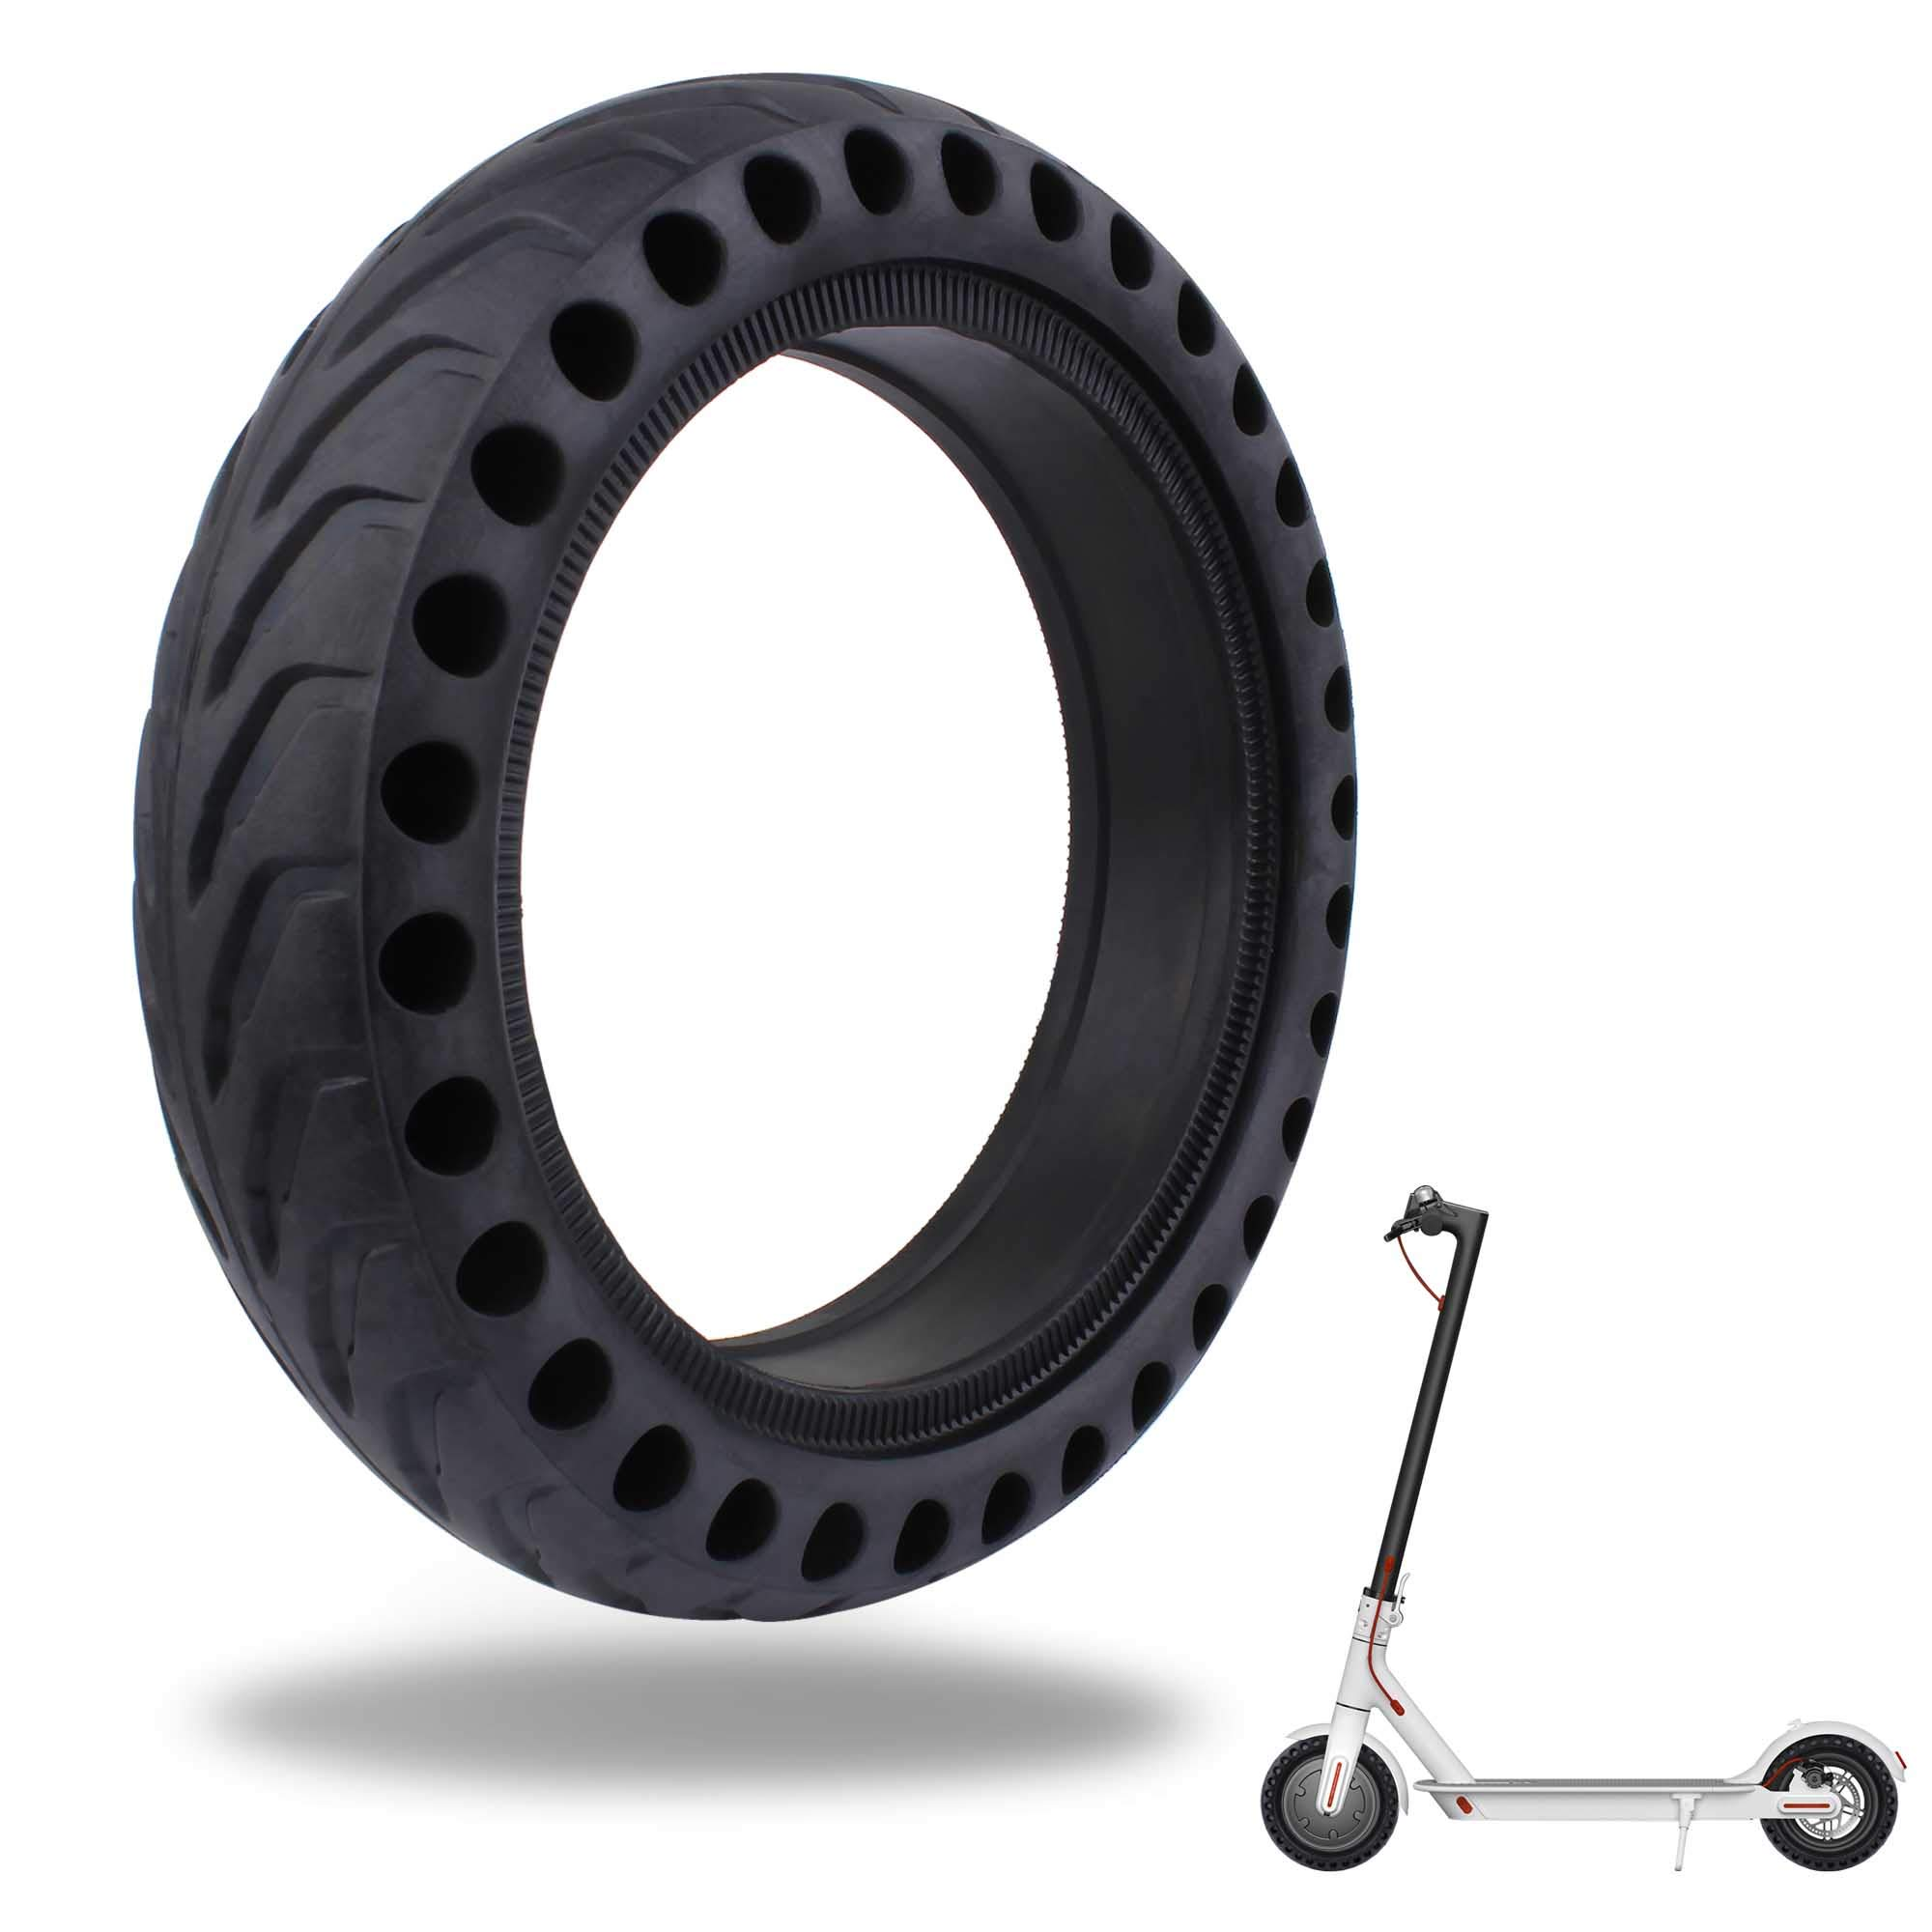 TOMALL Honeycomb Rubber Damping Solid Tire 8.5 Inch Front/Rear Tire Wheel Replacement for Xiaomi M365 Electric Scooter by TOMALL